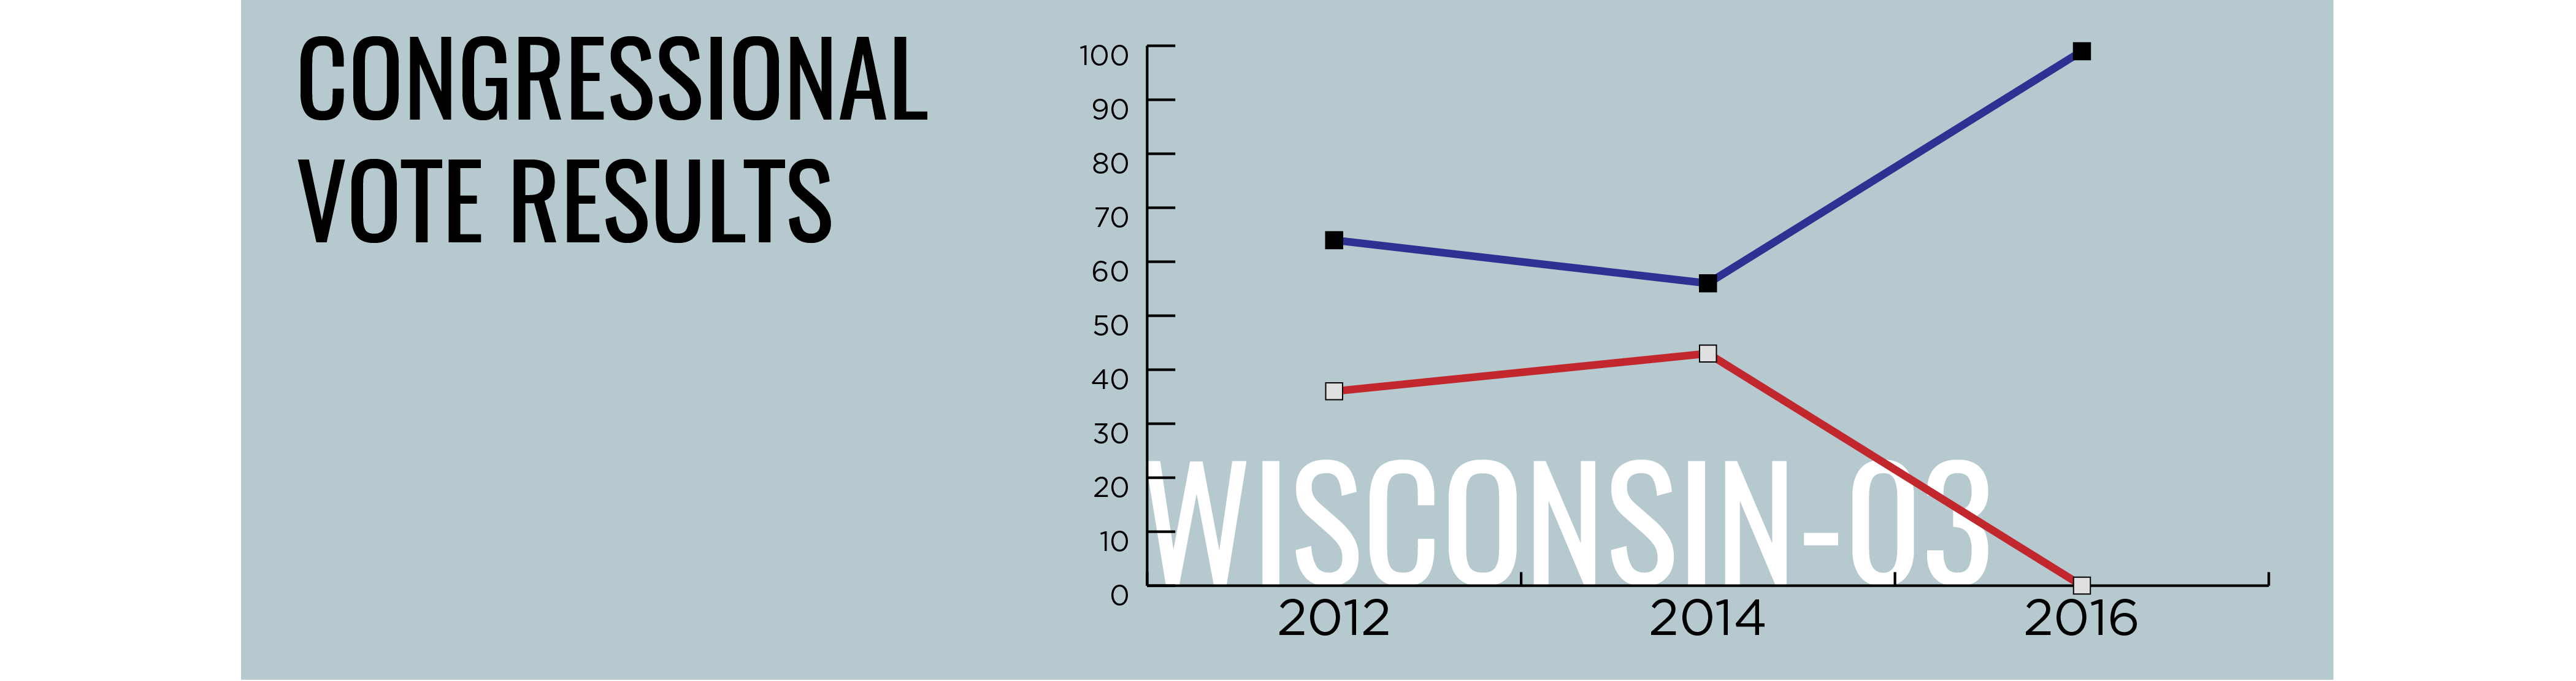 Wisconsin Vital Stats Congressional Vote Results_graphs